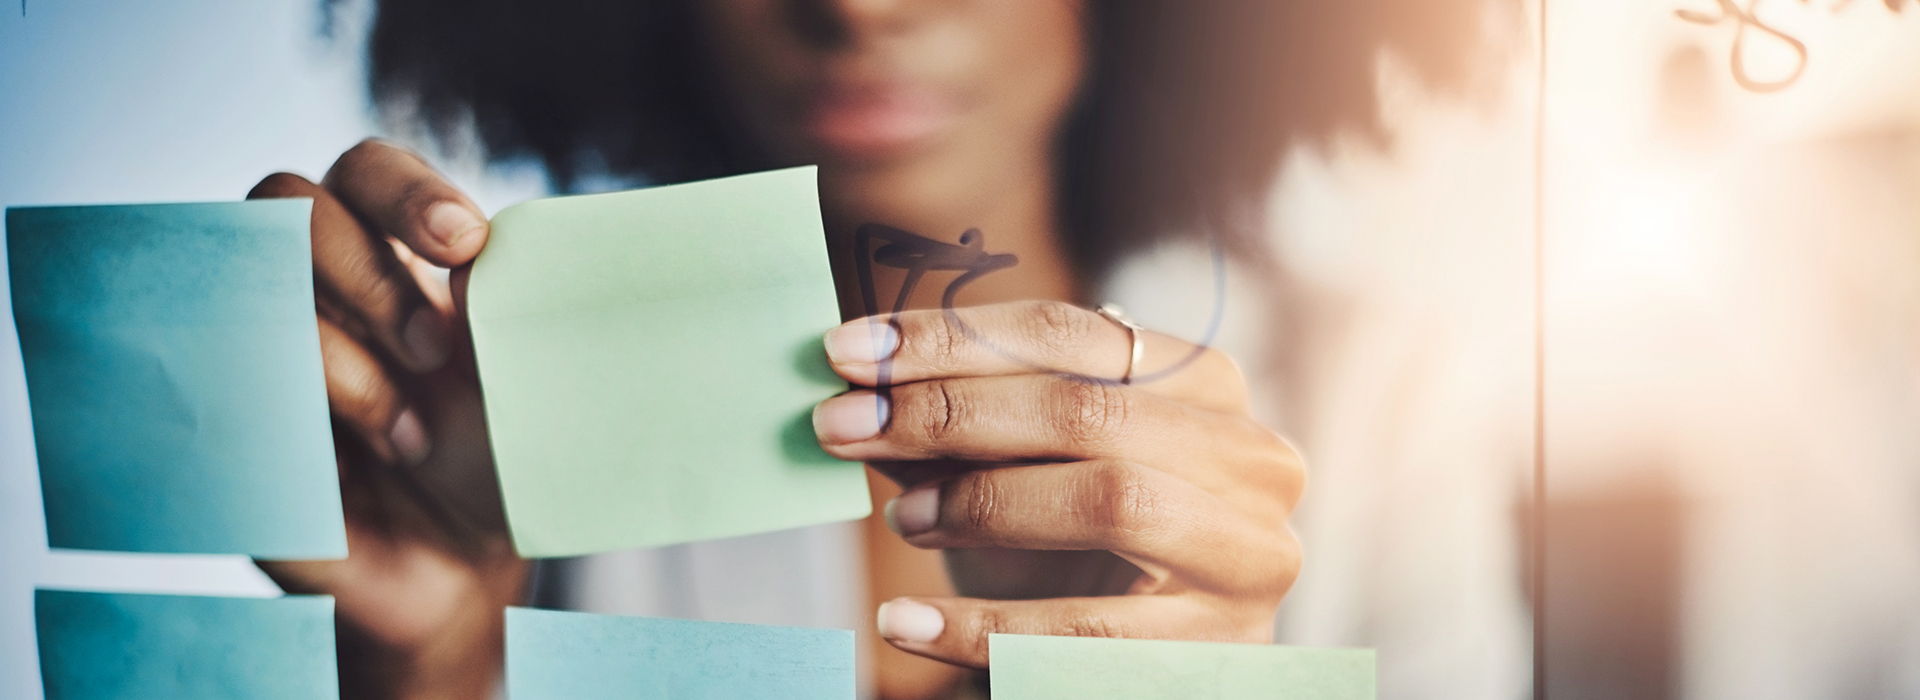 Woman in office using sticky notes on board for project planning